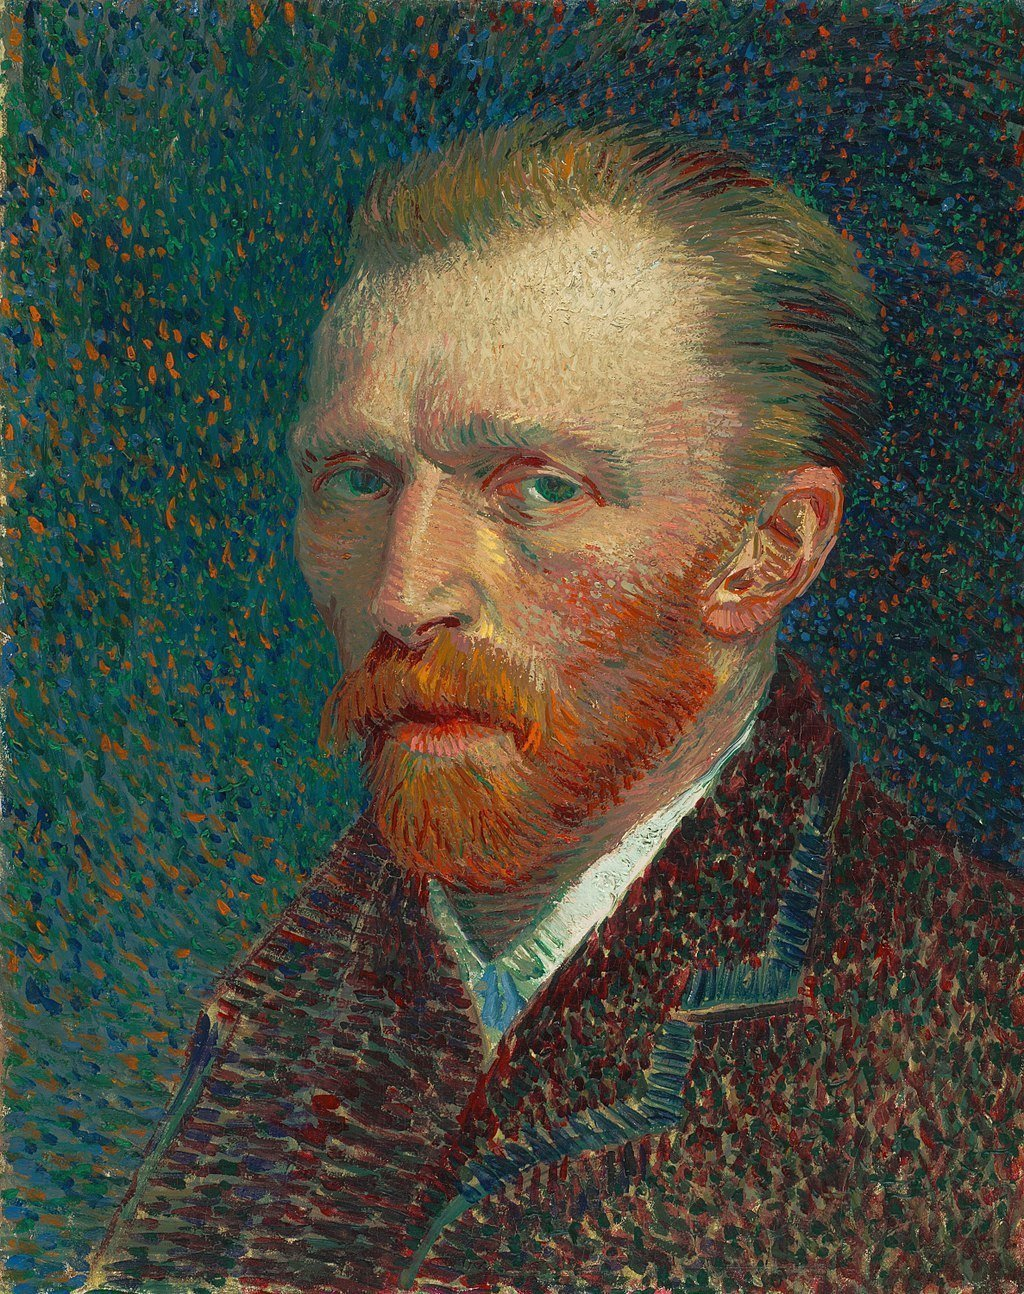 Self Portrait by Vincent van Gogh, 1887